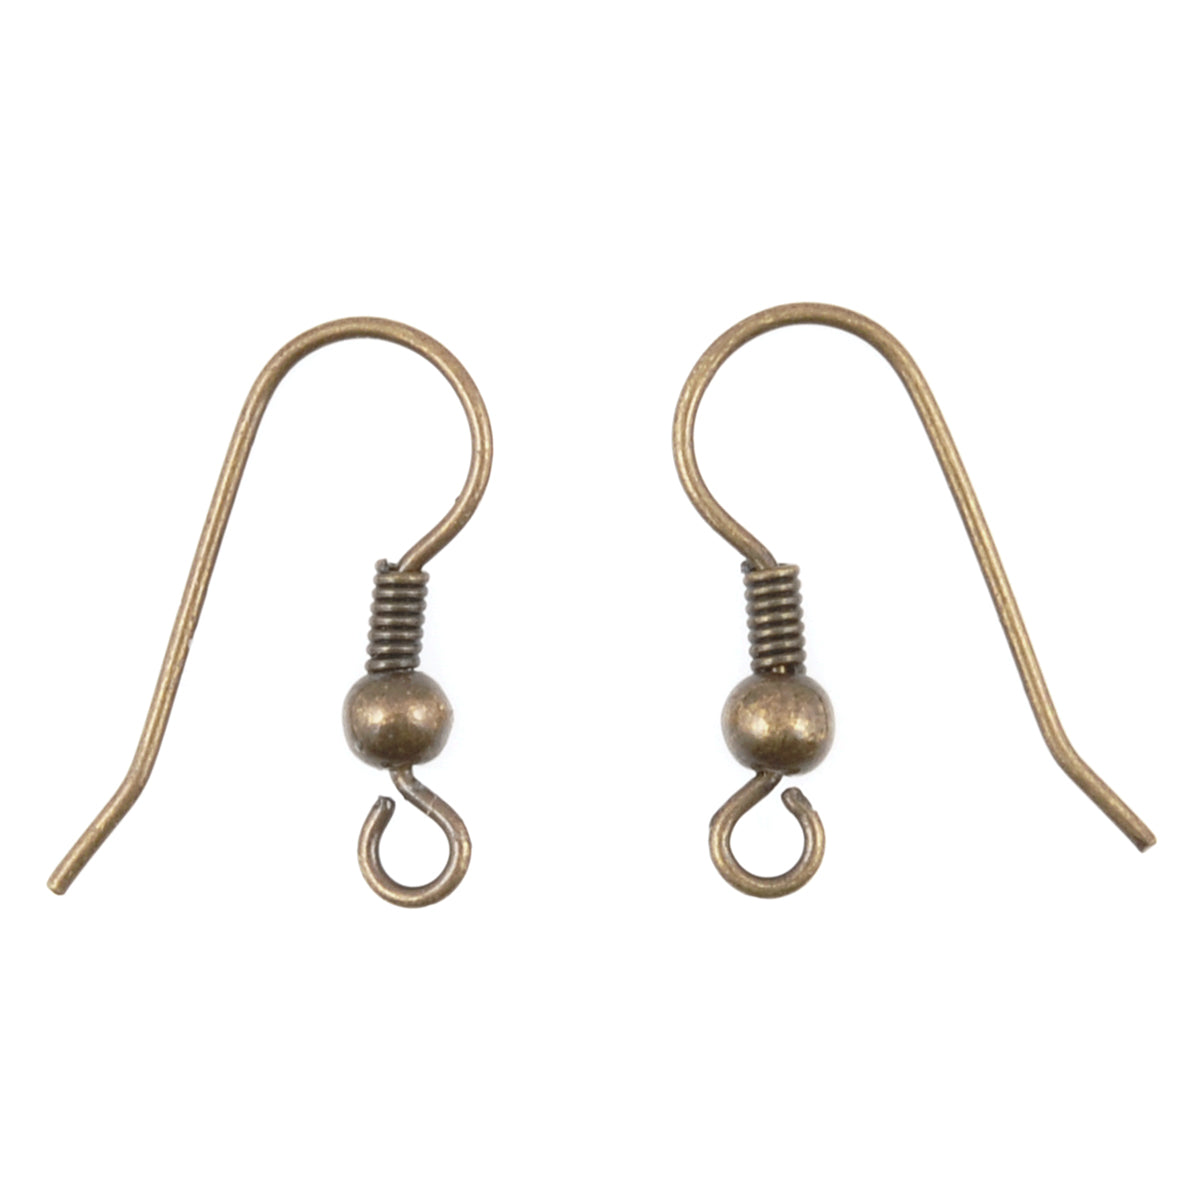 Findings-20mm French Ear Wire-Bronze-Quantity 6 (3 Pairs)